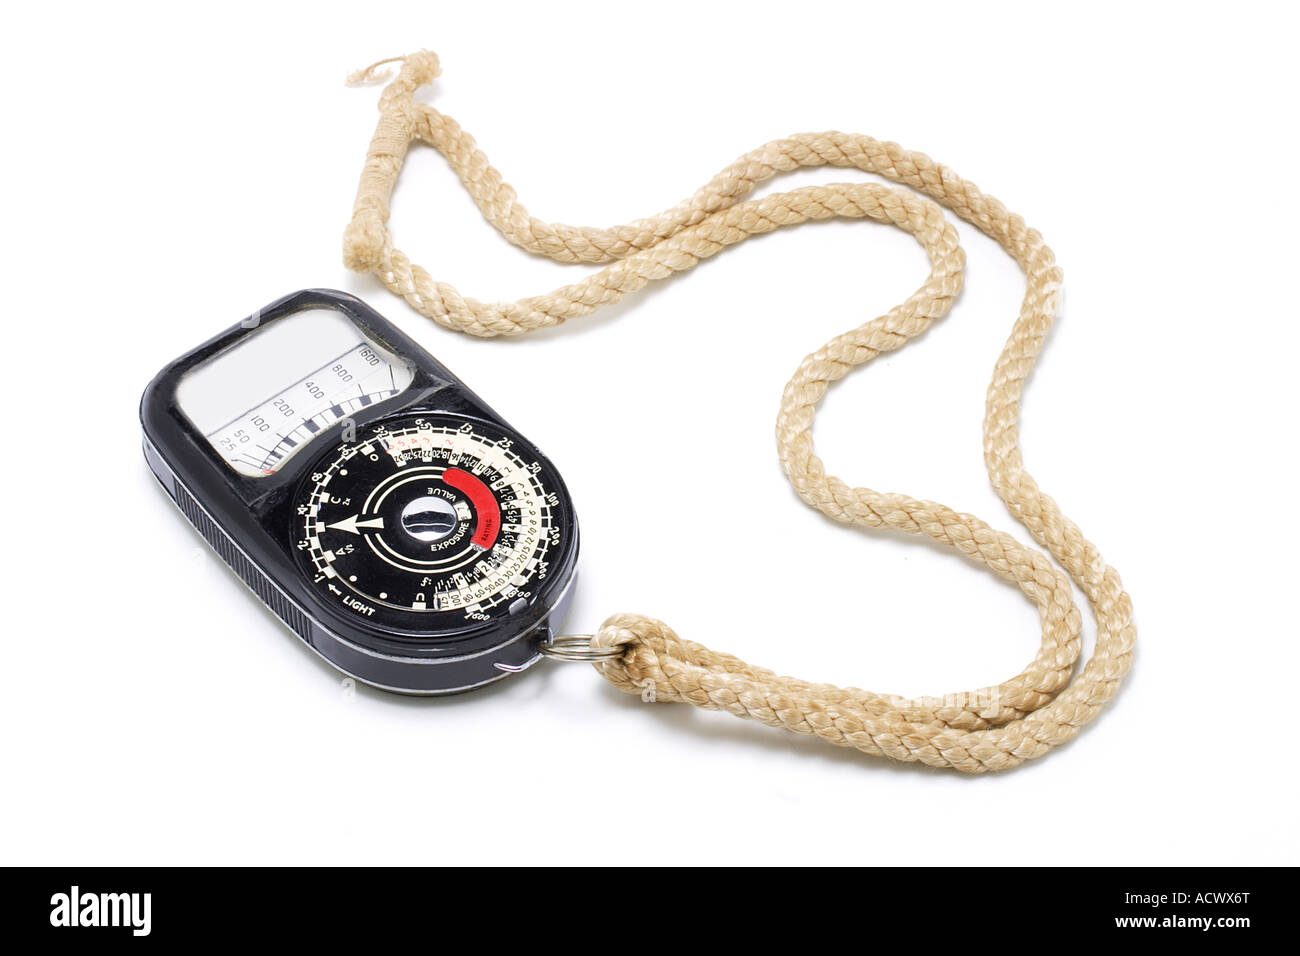 Exposure Meter - Stock Image